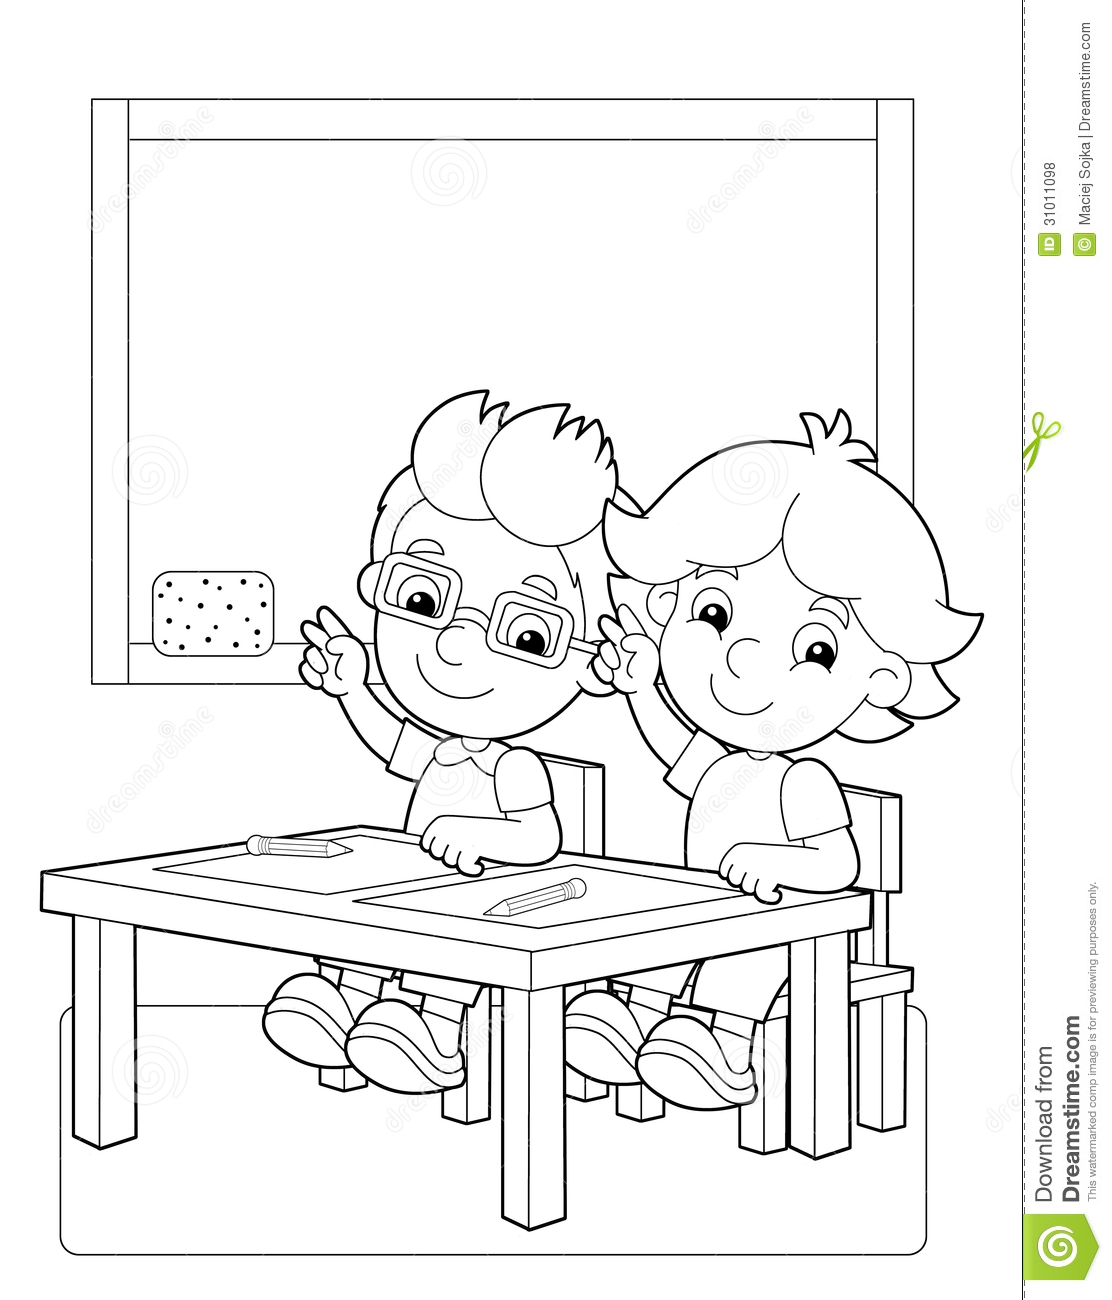 The Page With Exercises For Kids - Coloring Book ...